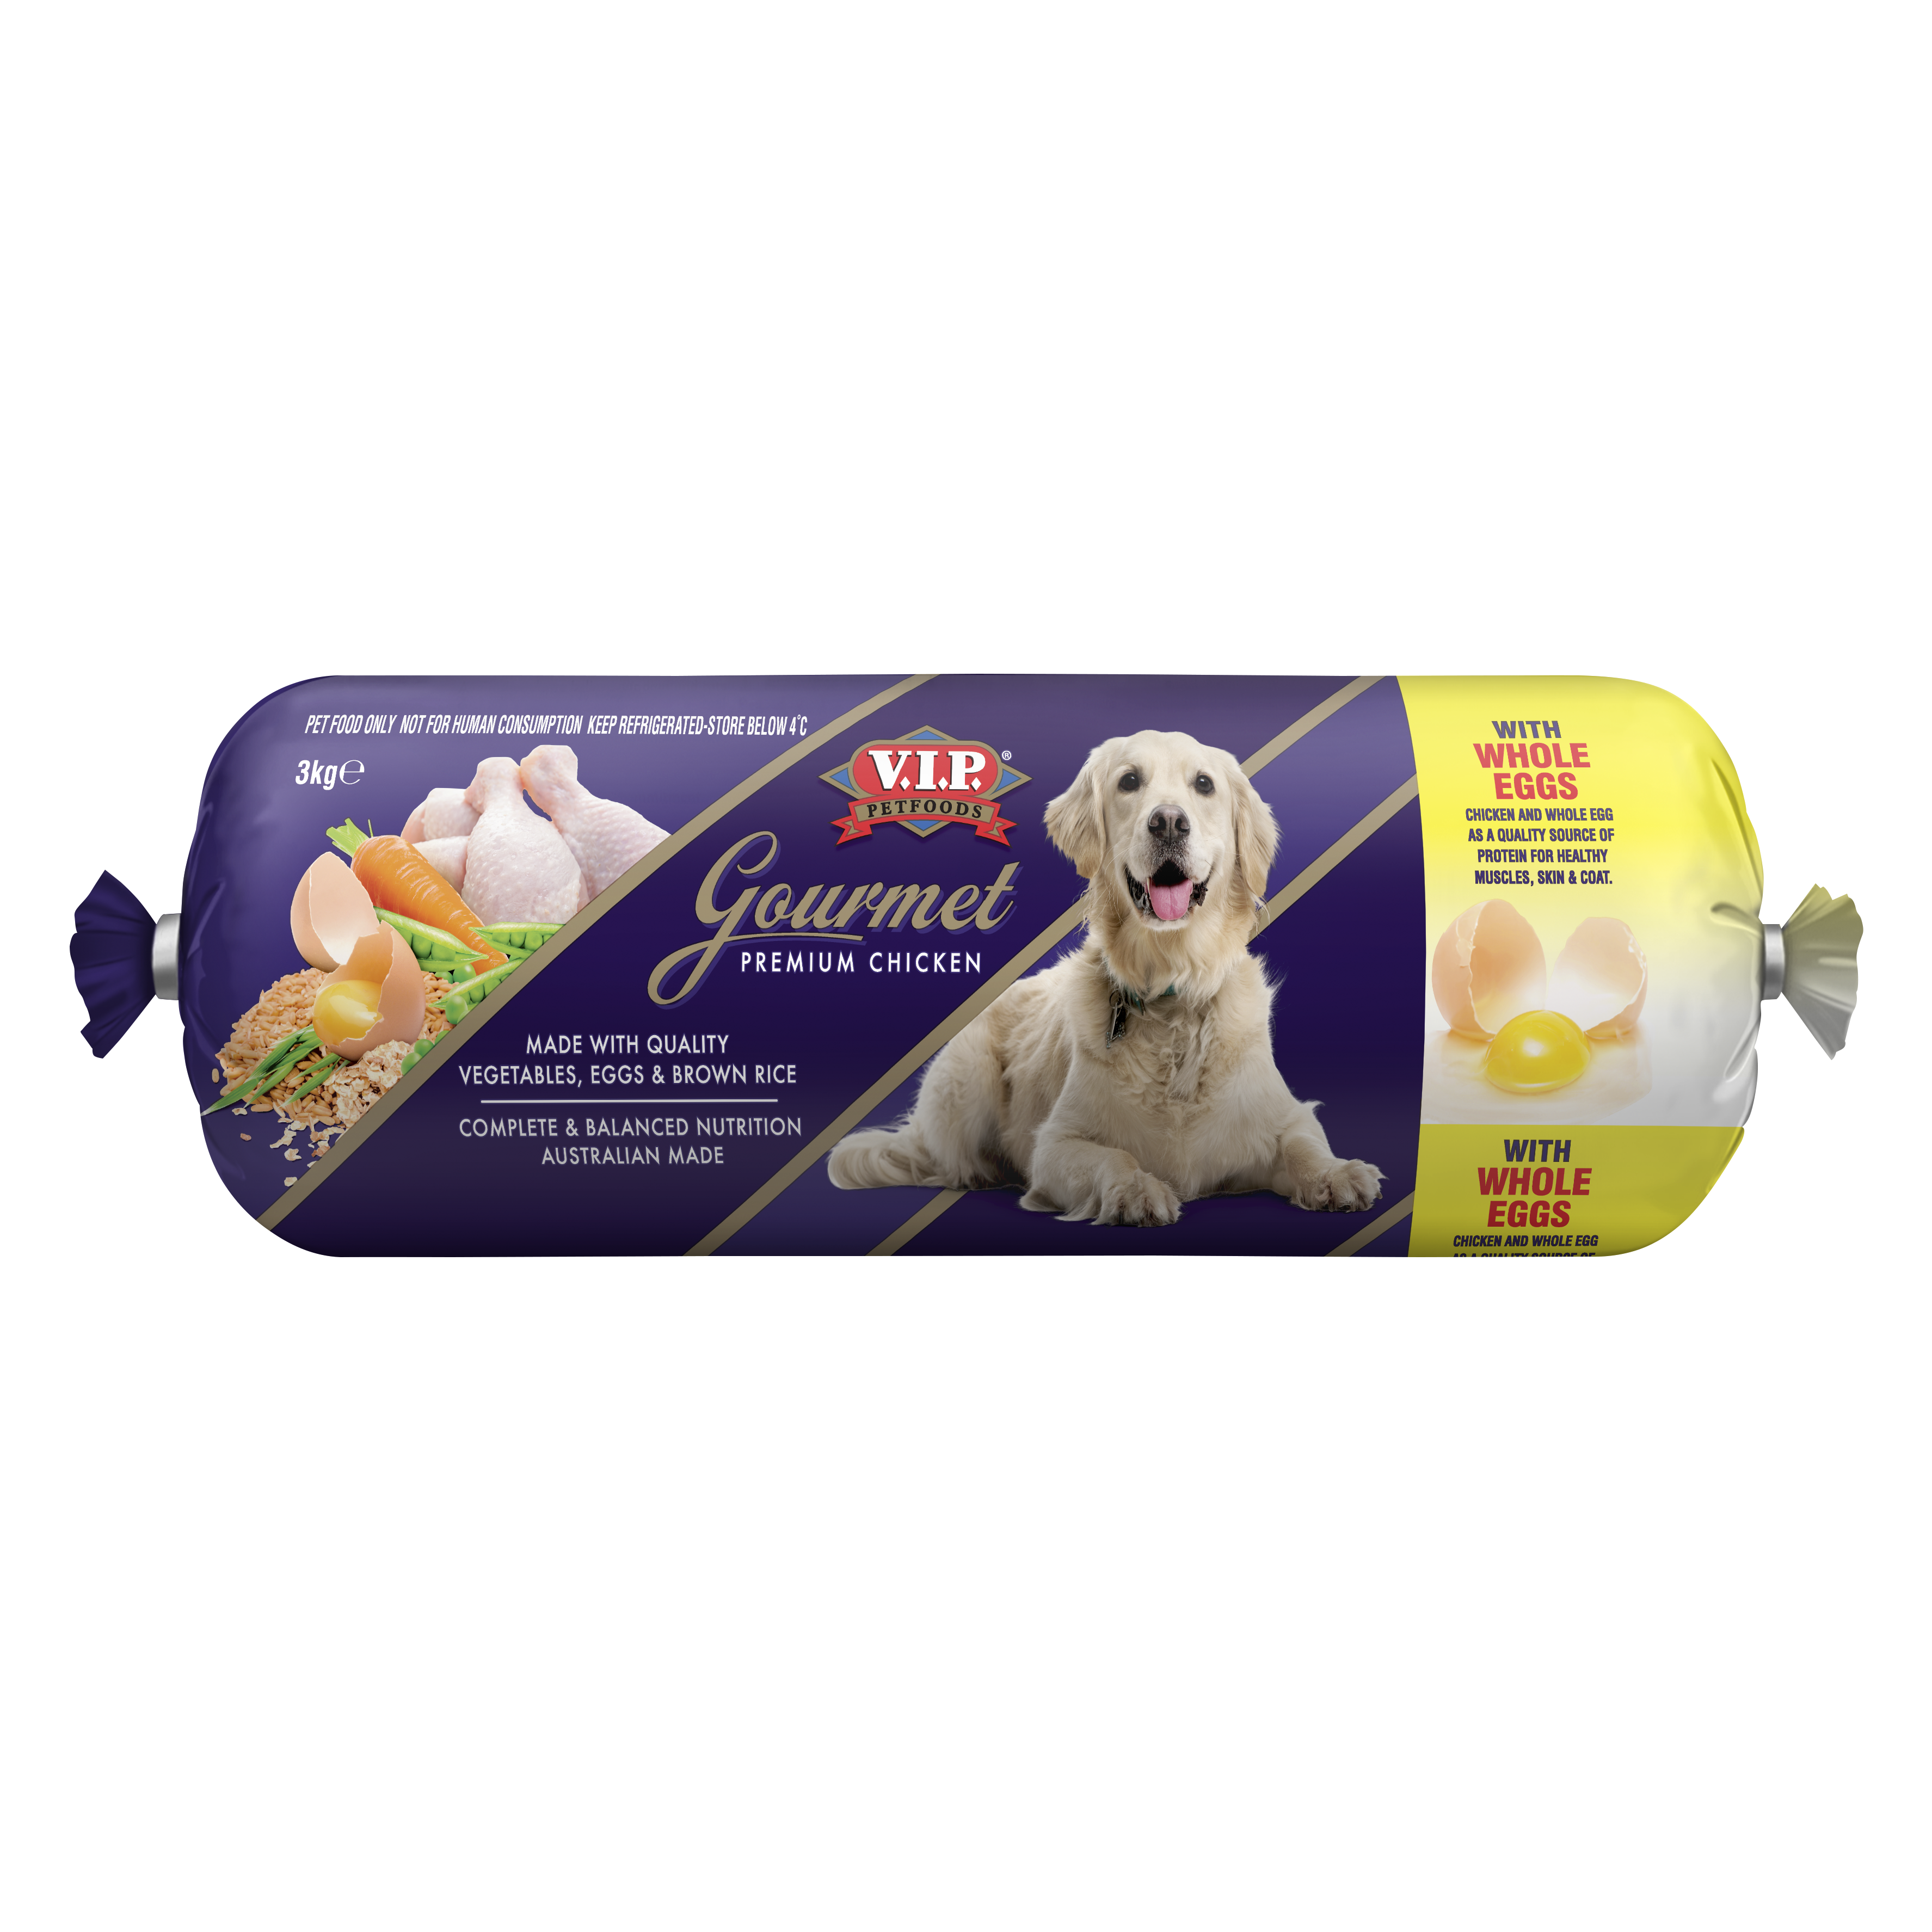 V.I.P. Petfoods | Gourmet Premium Chicken 3kg | Chilled tray | Front of pack